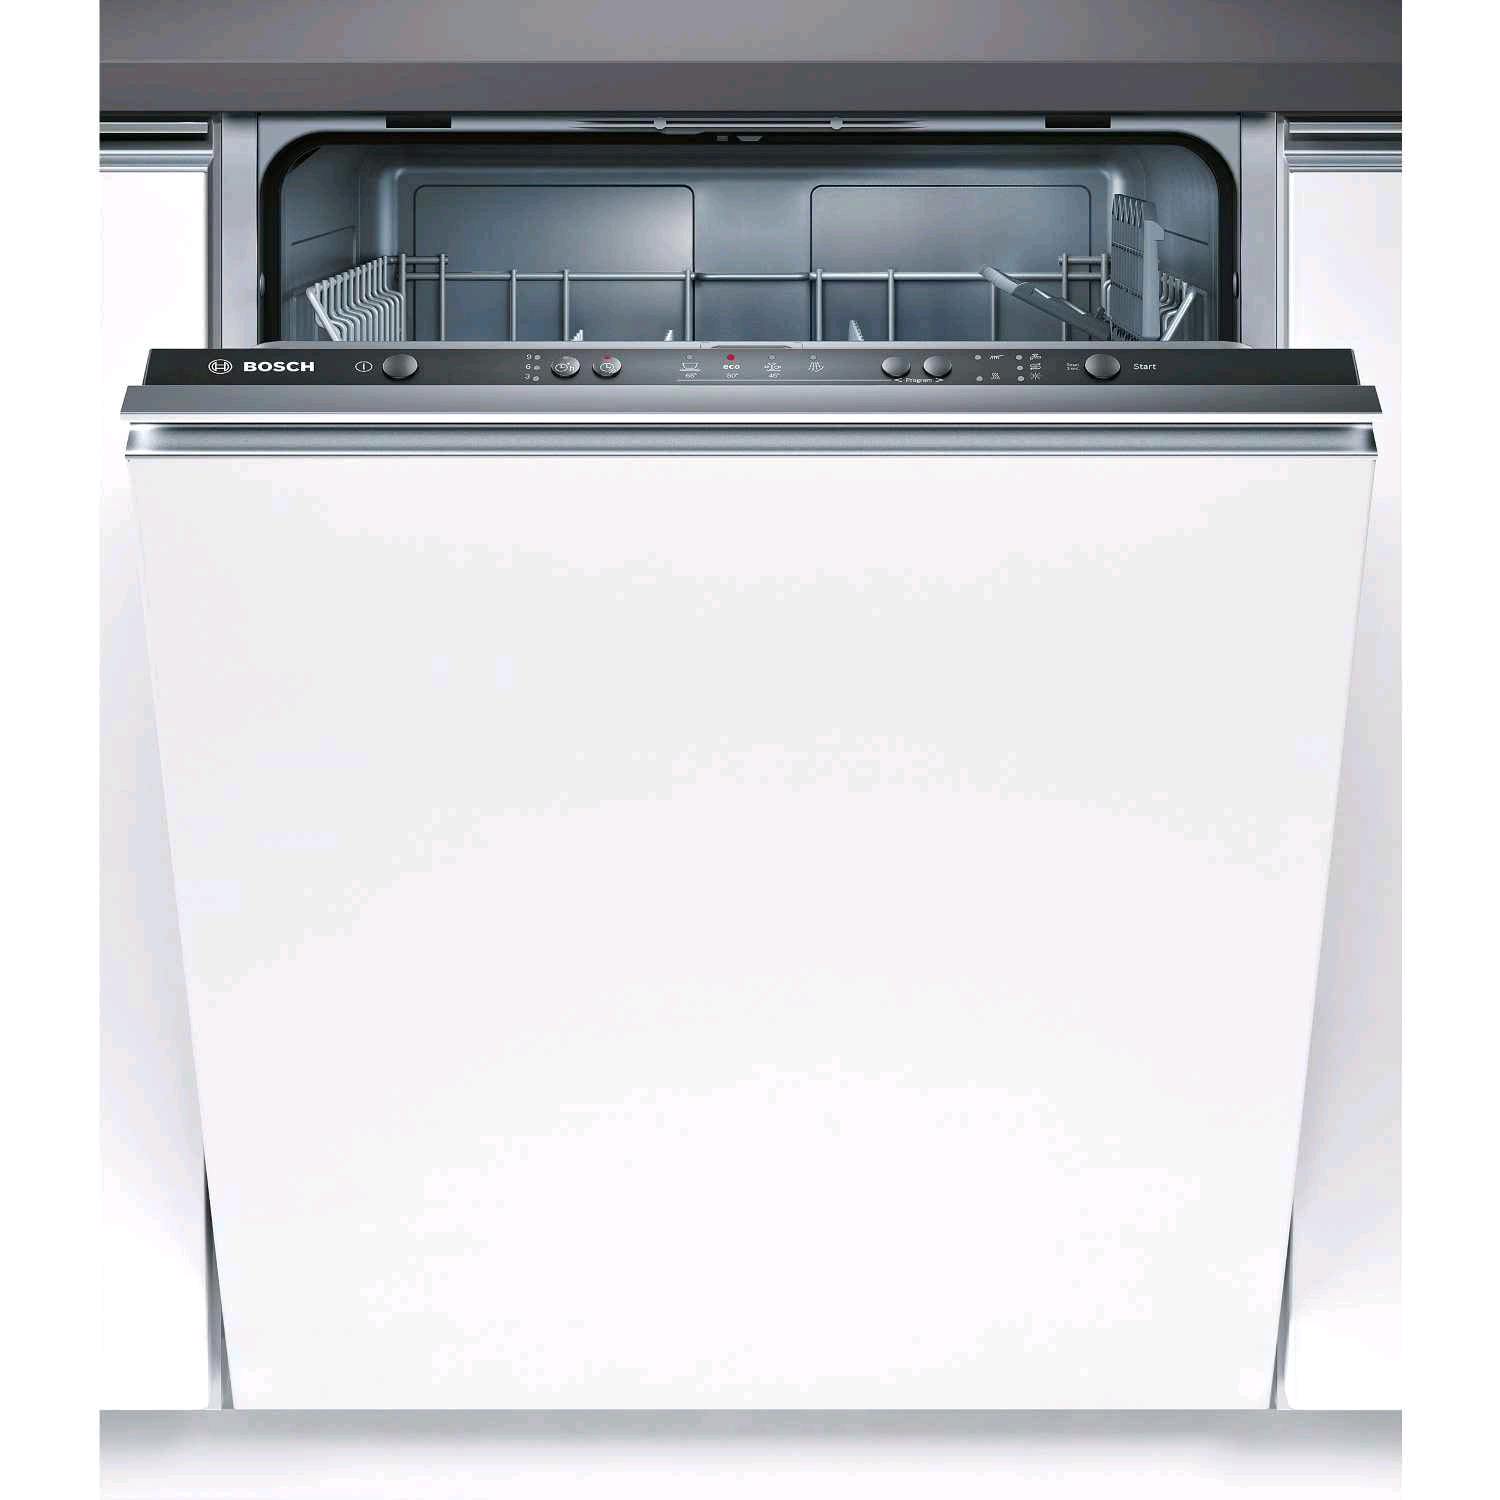 Bosch Dishwasher Built In 12 Place A+ White Fully Integrated H81.5  W59.8 D 55.0cm